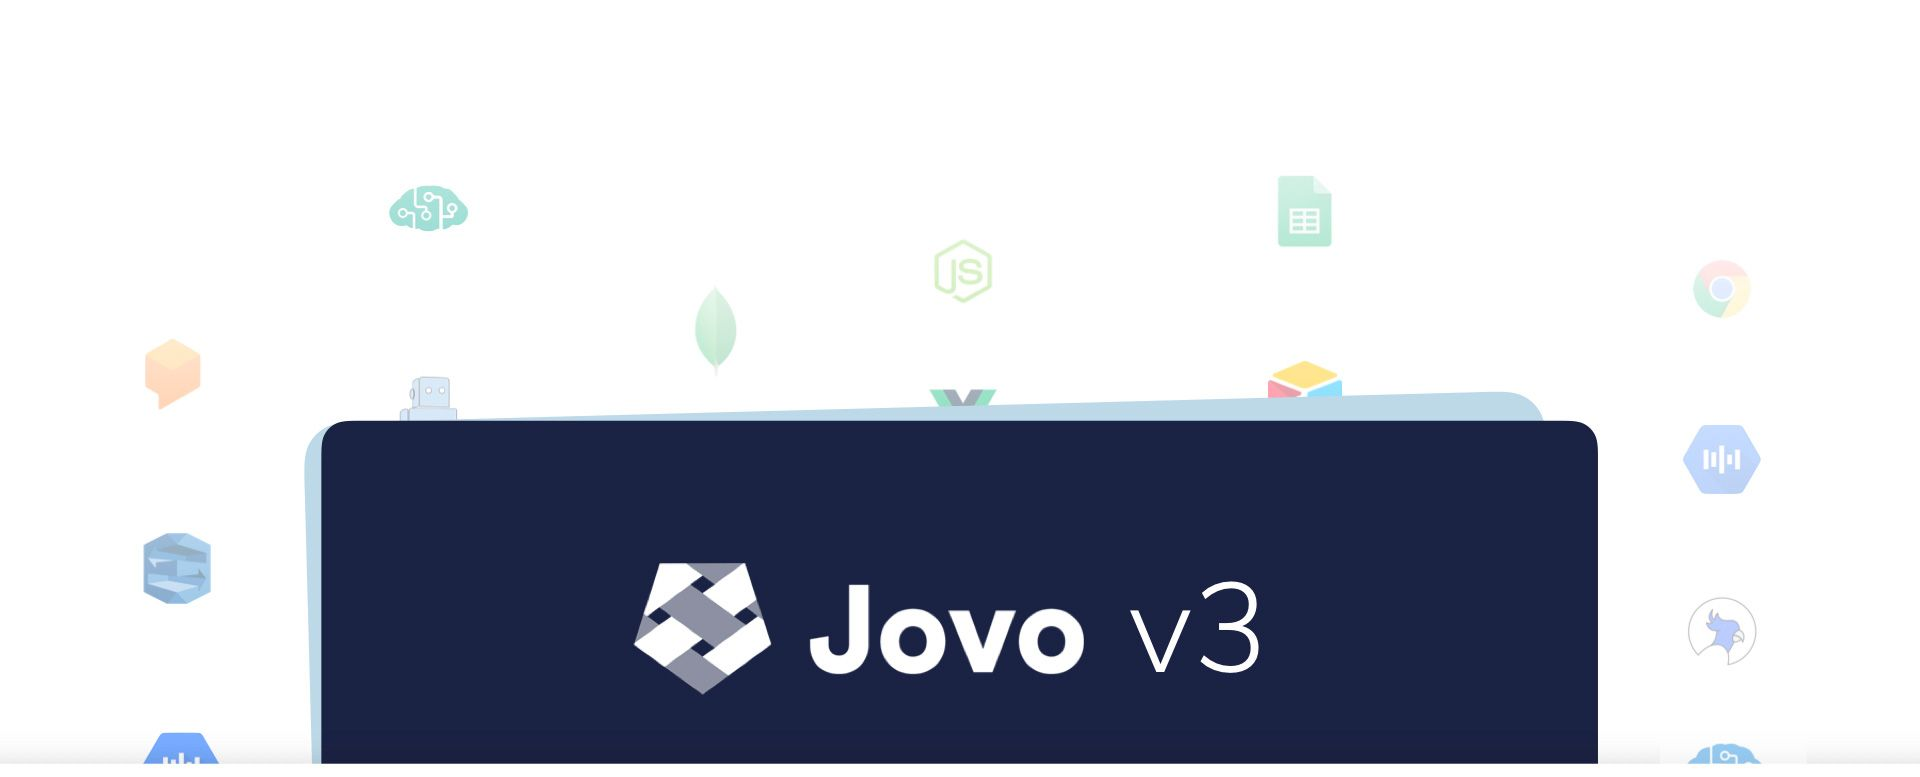 Introducing Jovo v3, the Voice Layer